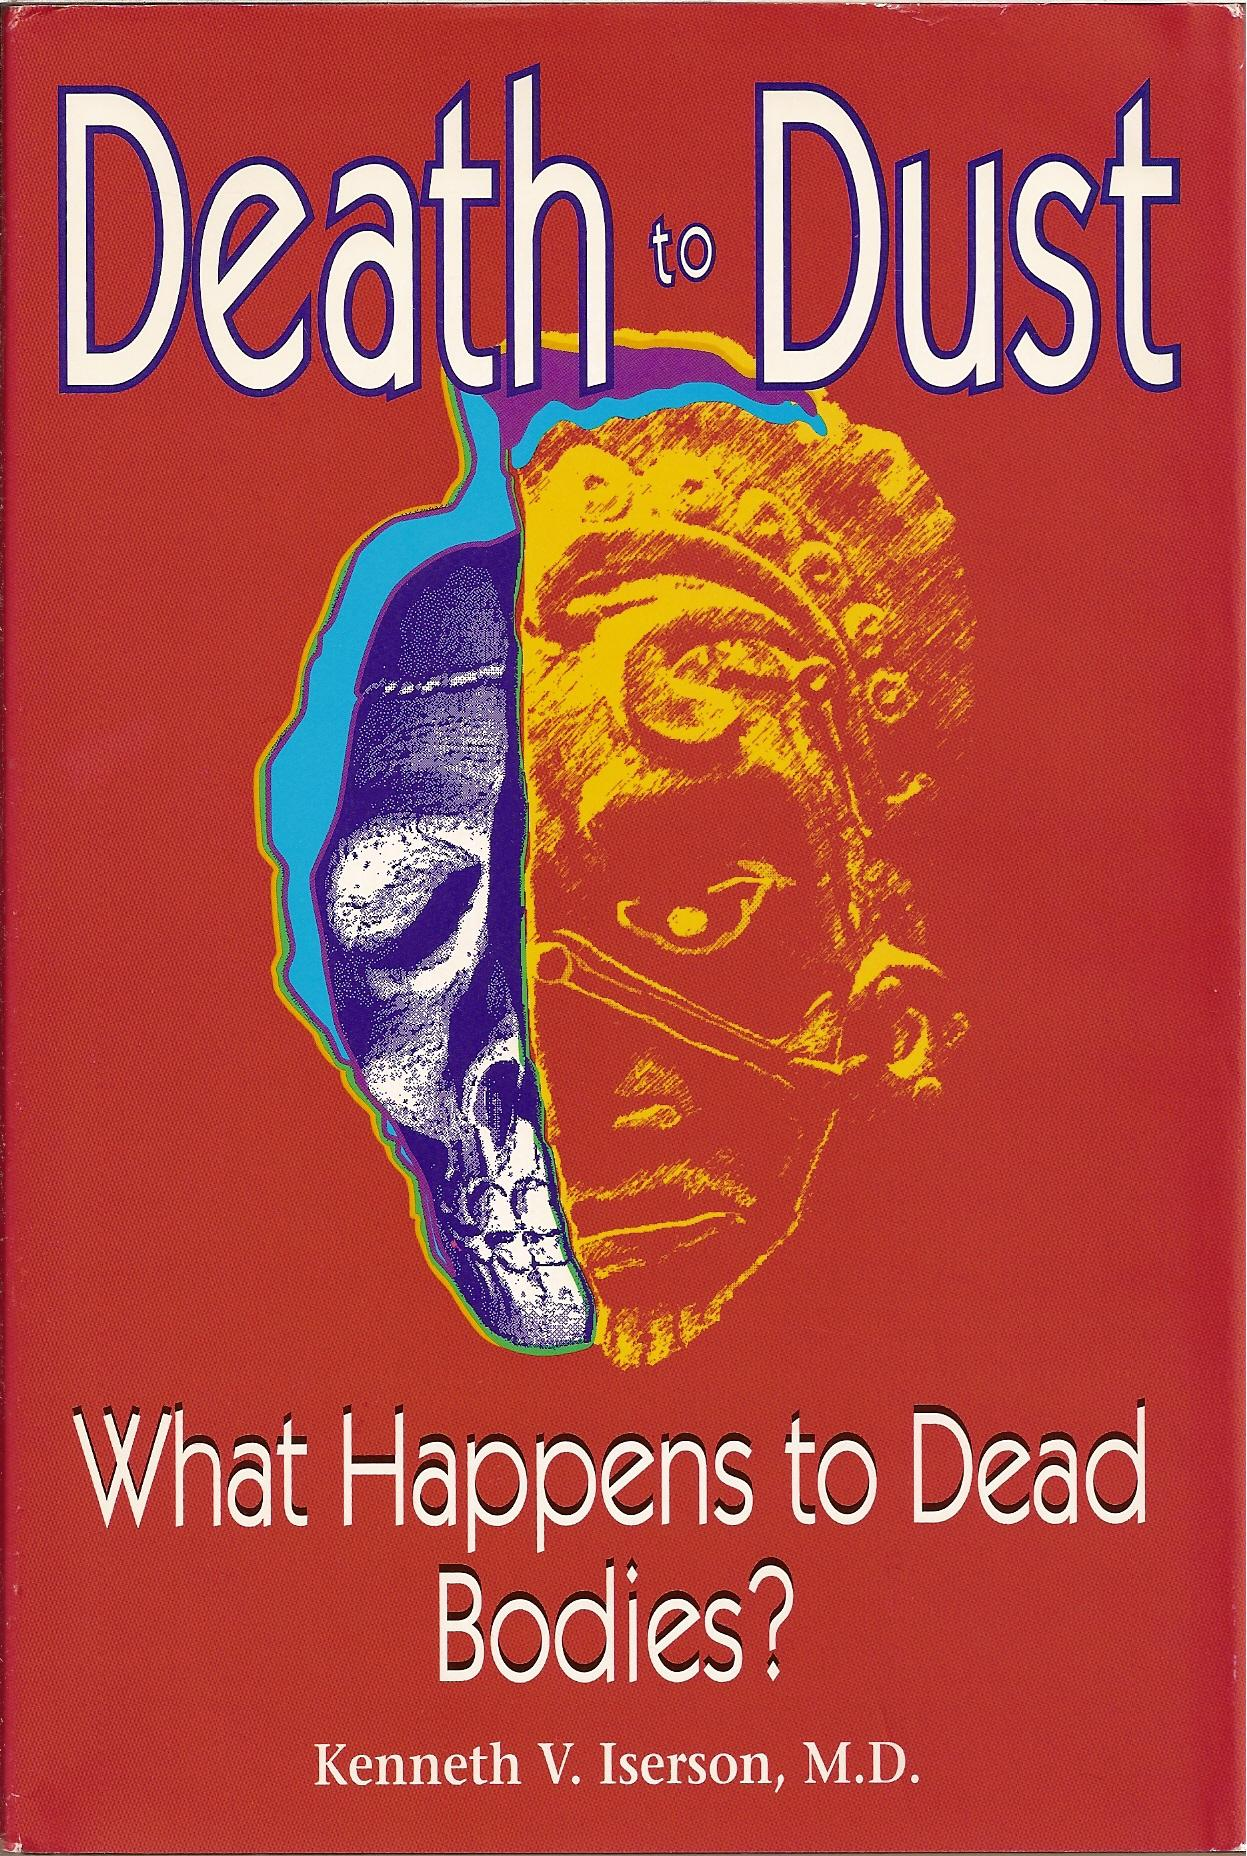 Death to Dust